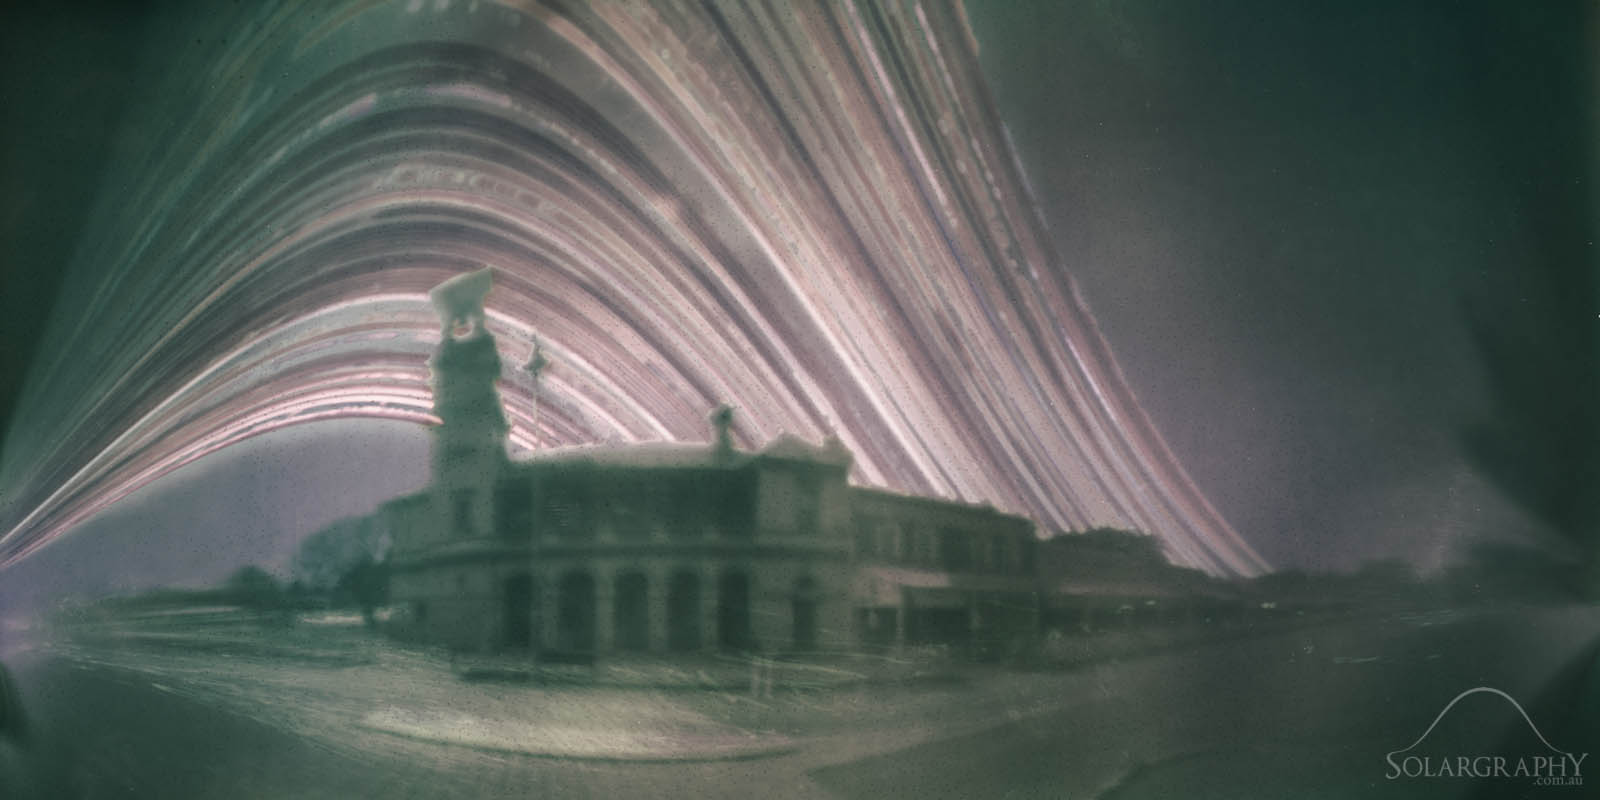 Solargraphy by Jesse Thompson